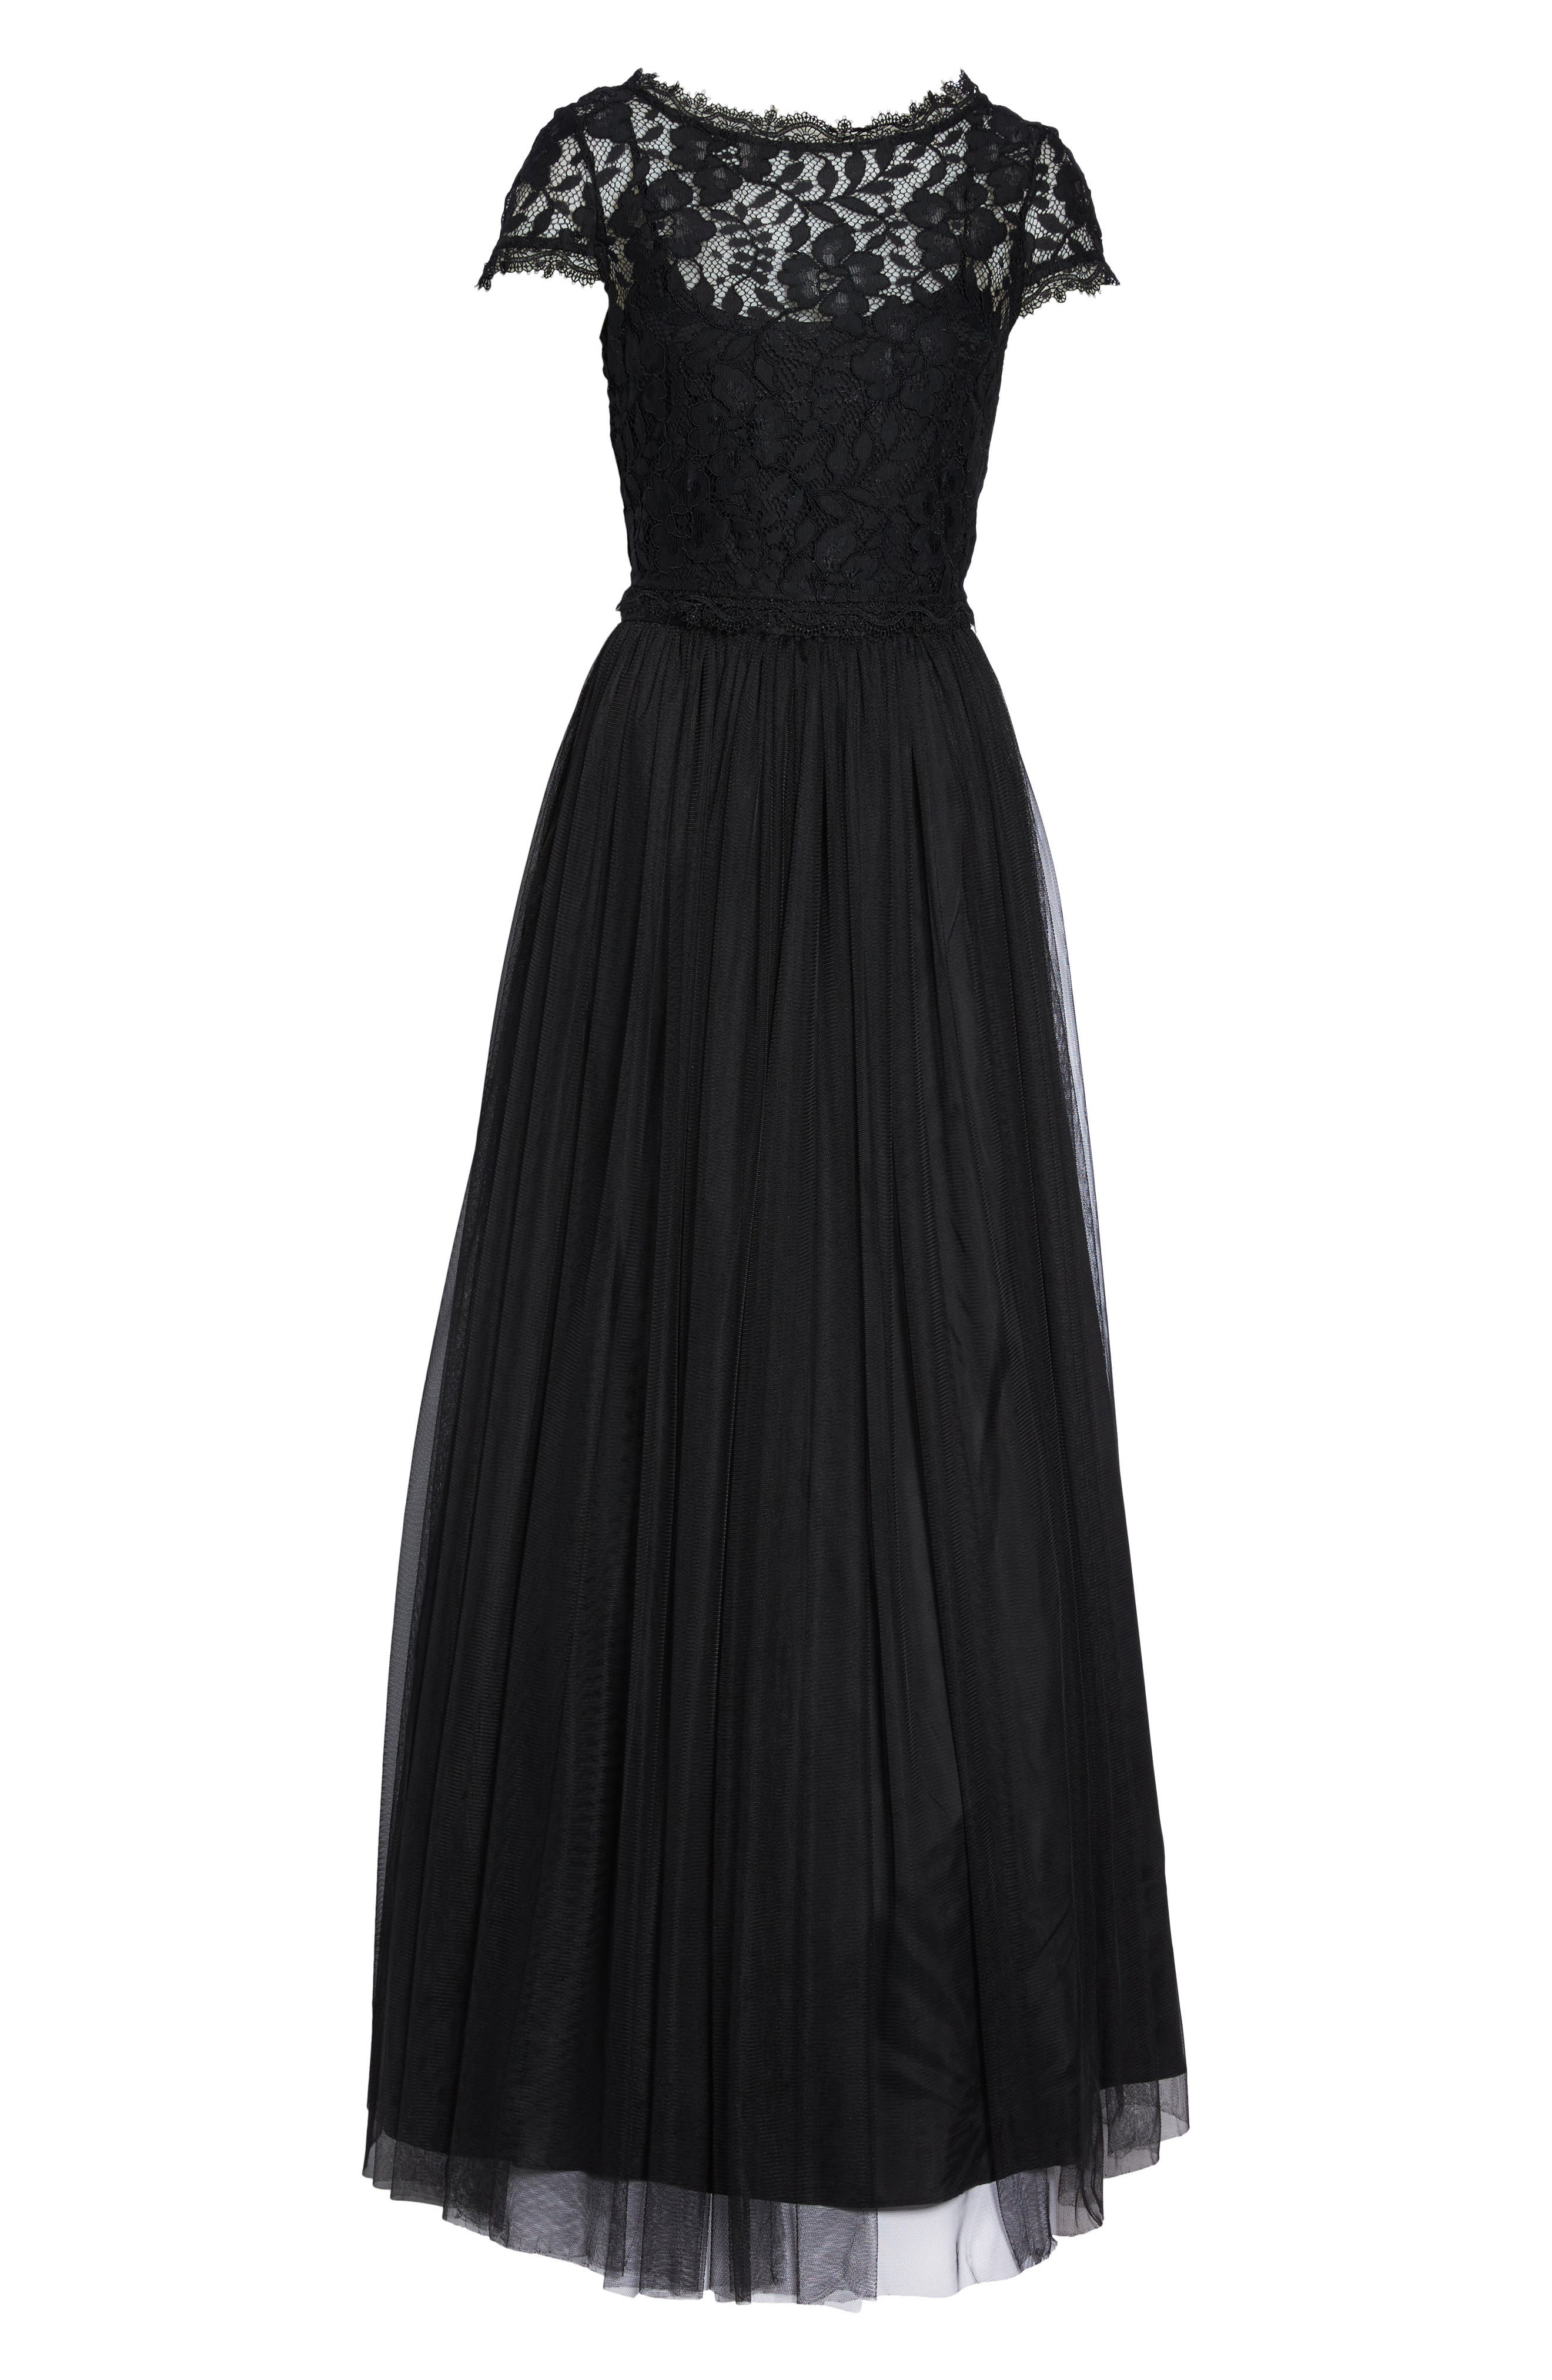 Lace and Tulle Two-Piece Dress,                             Alternate thumbnail 6, color,                             002